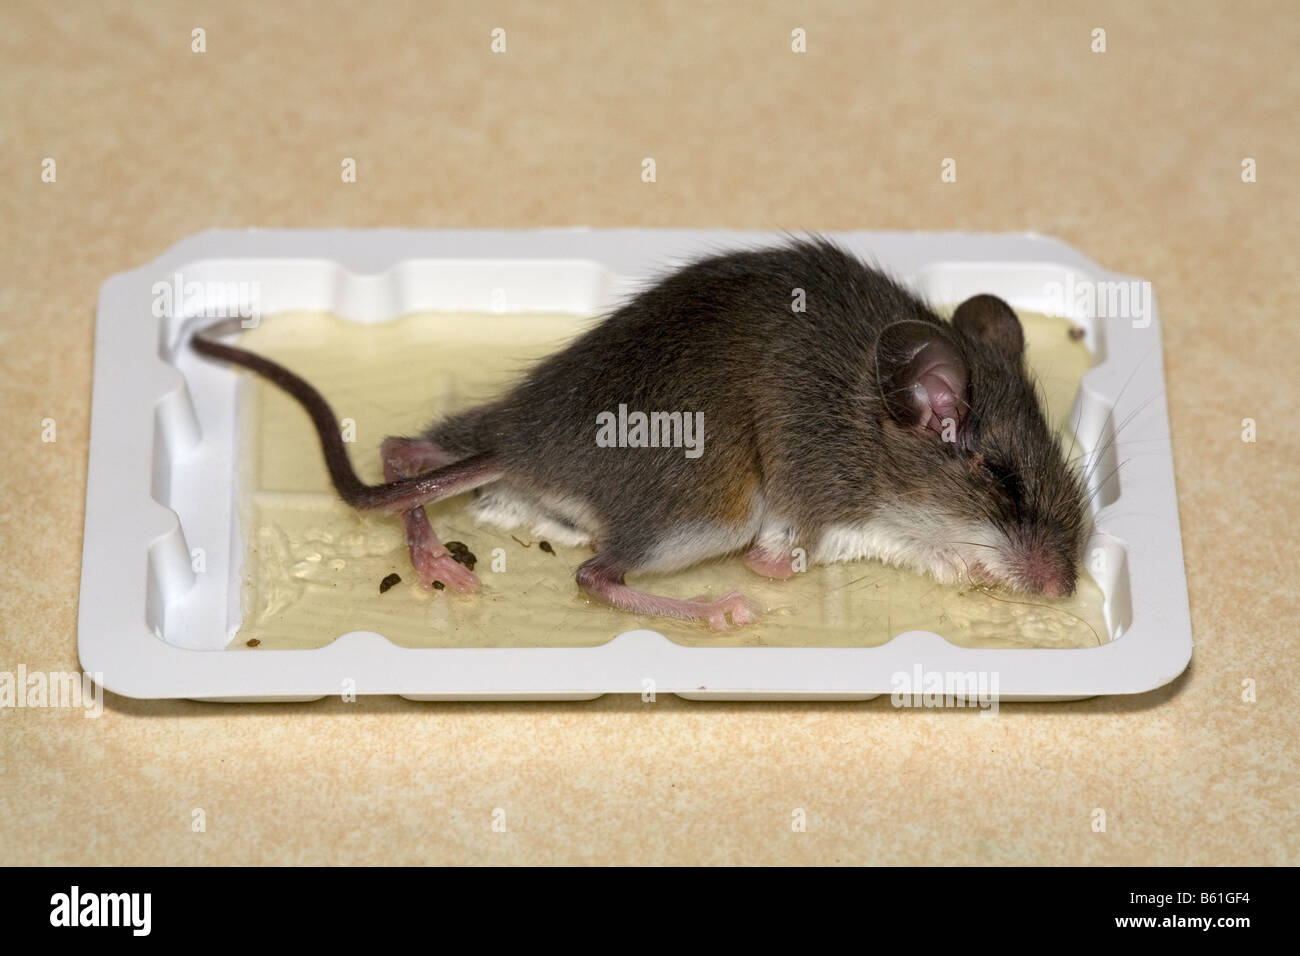 Dead Mouse In Glue Trap Stock Photo Royalty Free Image